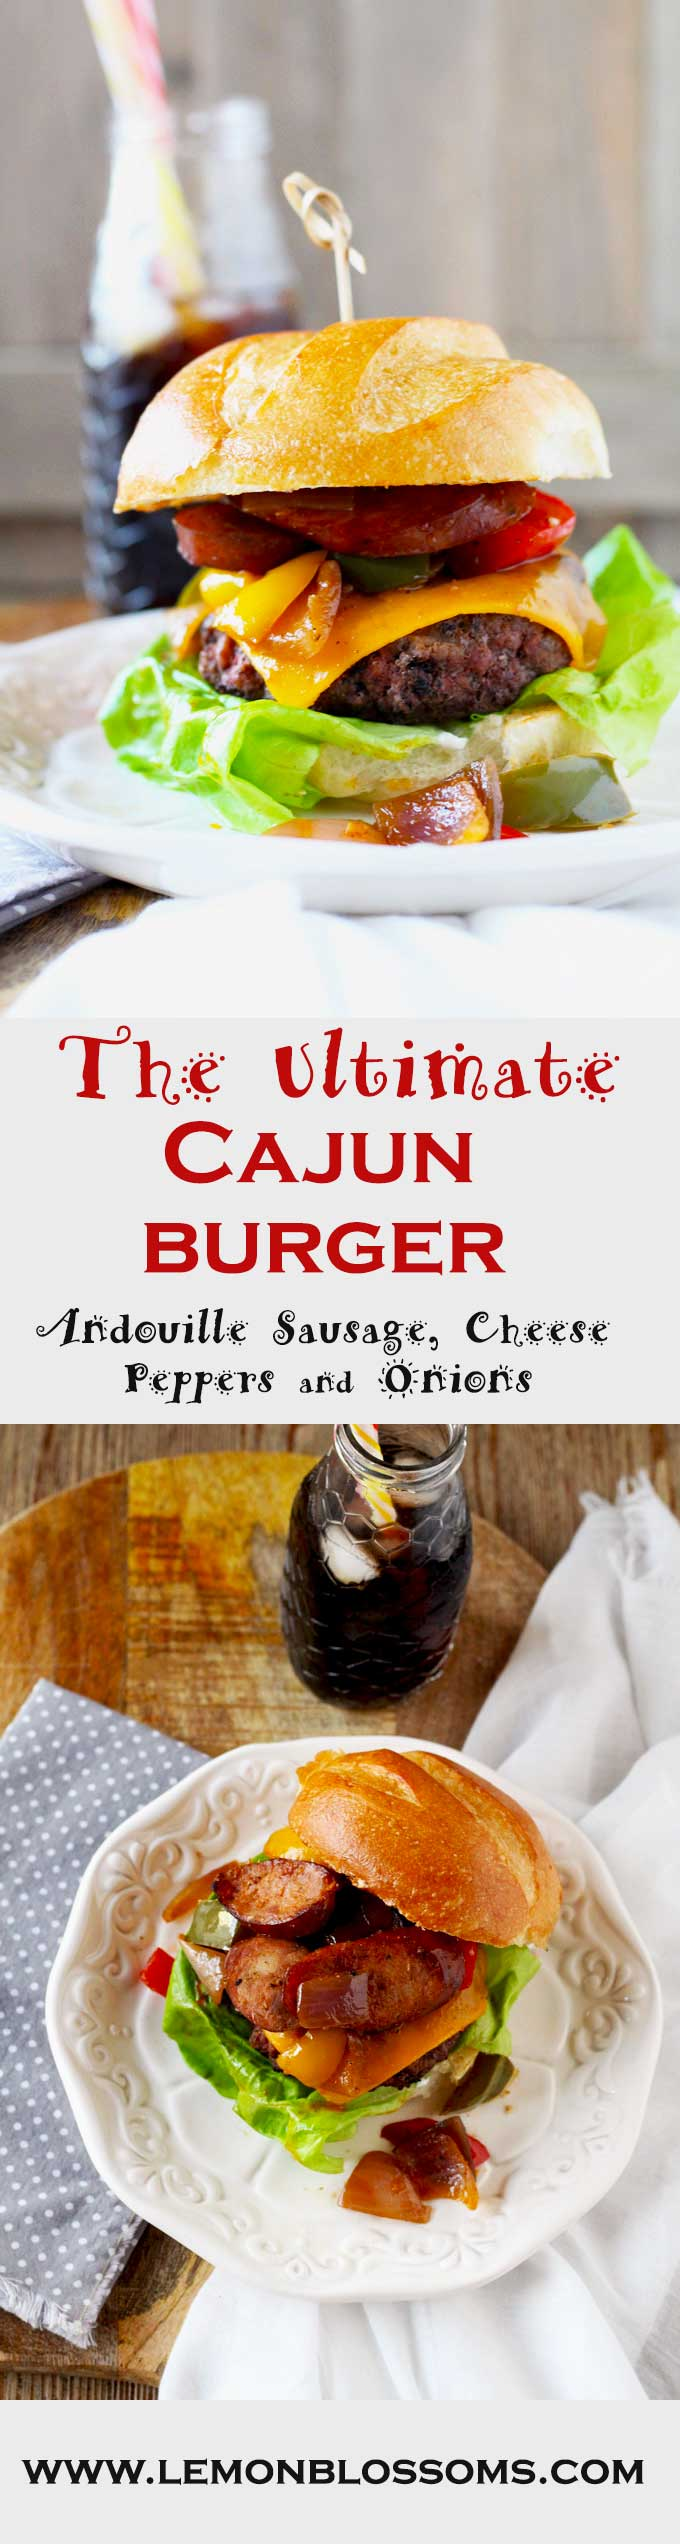 The Ultimate Cajun Burger is packed full of Cajun-Creole goodness! A moist Cajun spiced beef patty is topped with gooey cheddar cheese, sautéed onions, bell peppers and Andouille sausage. A true explosion of flavors!